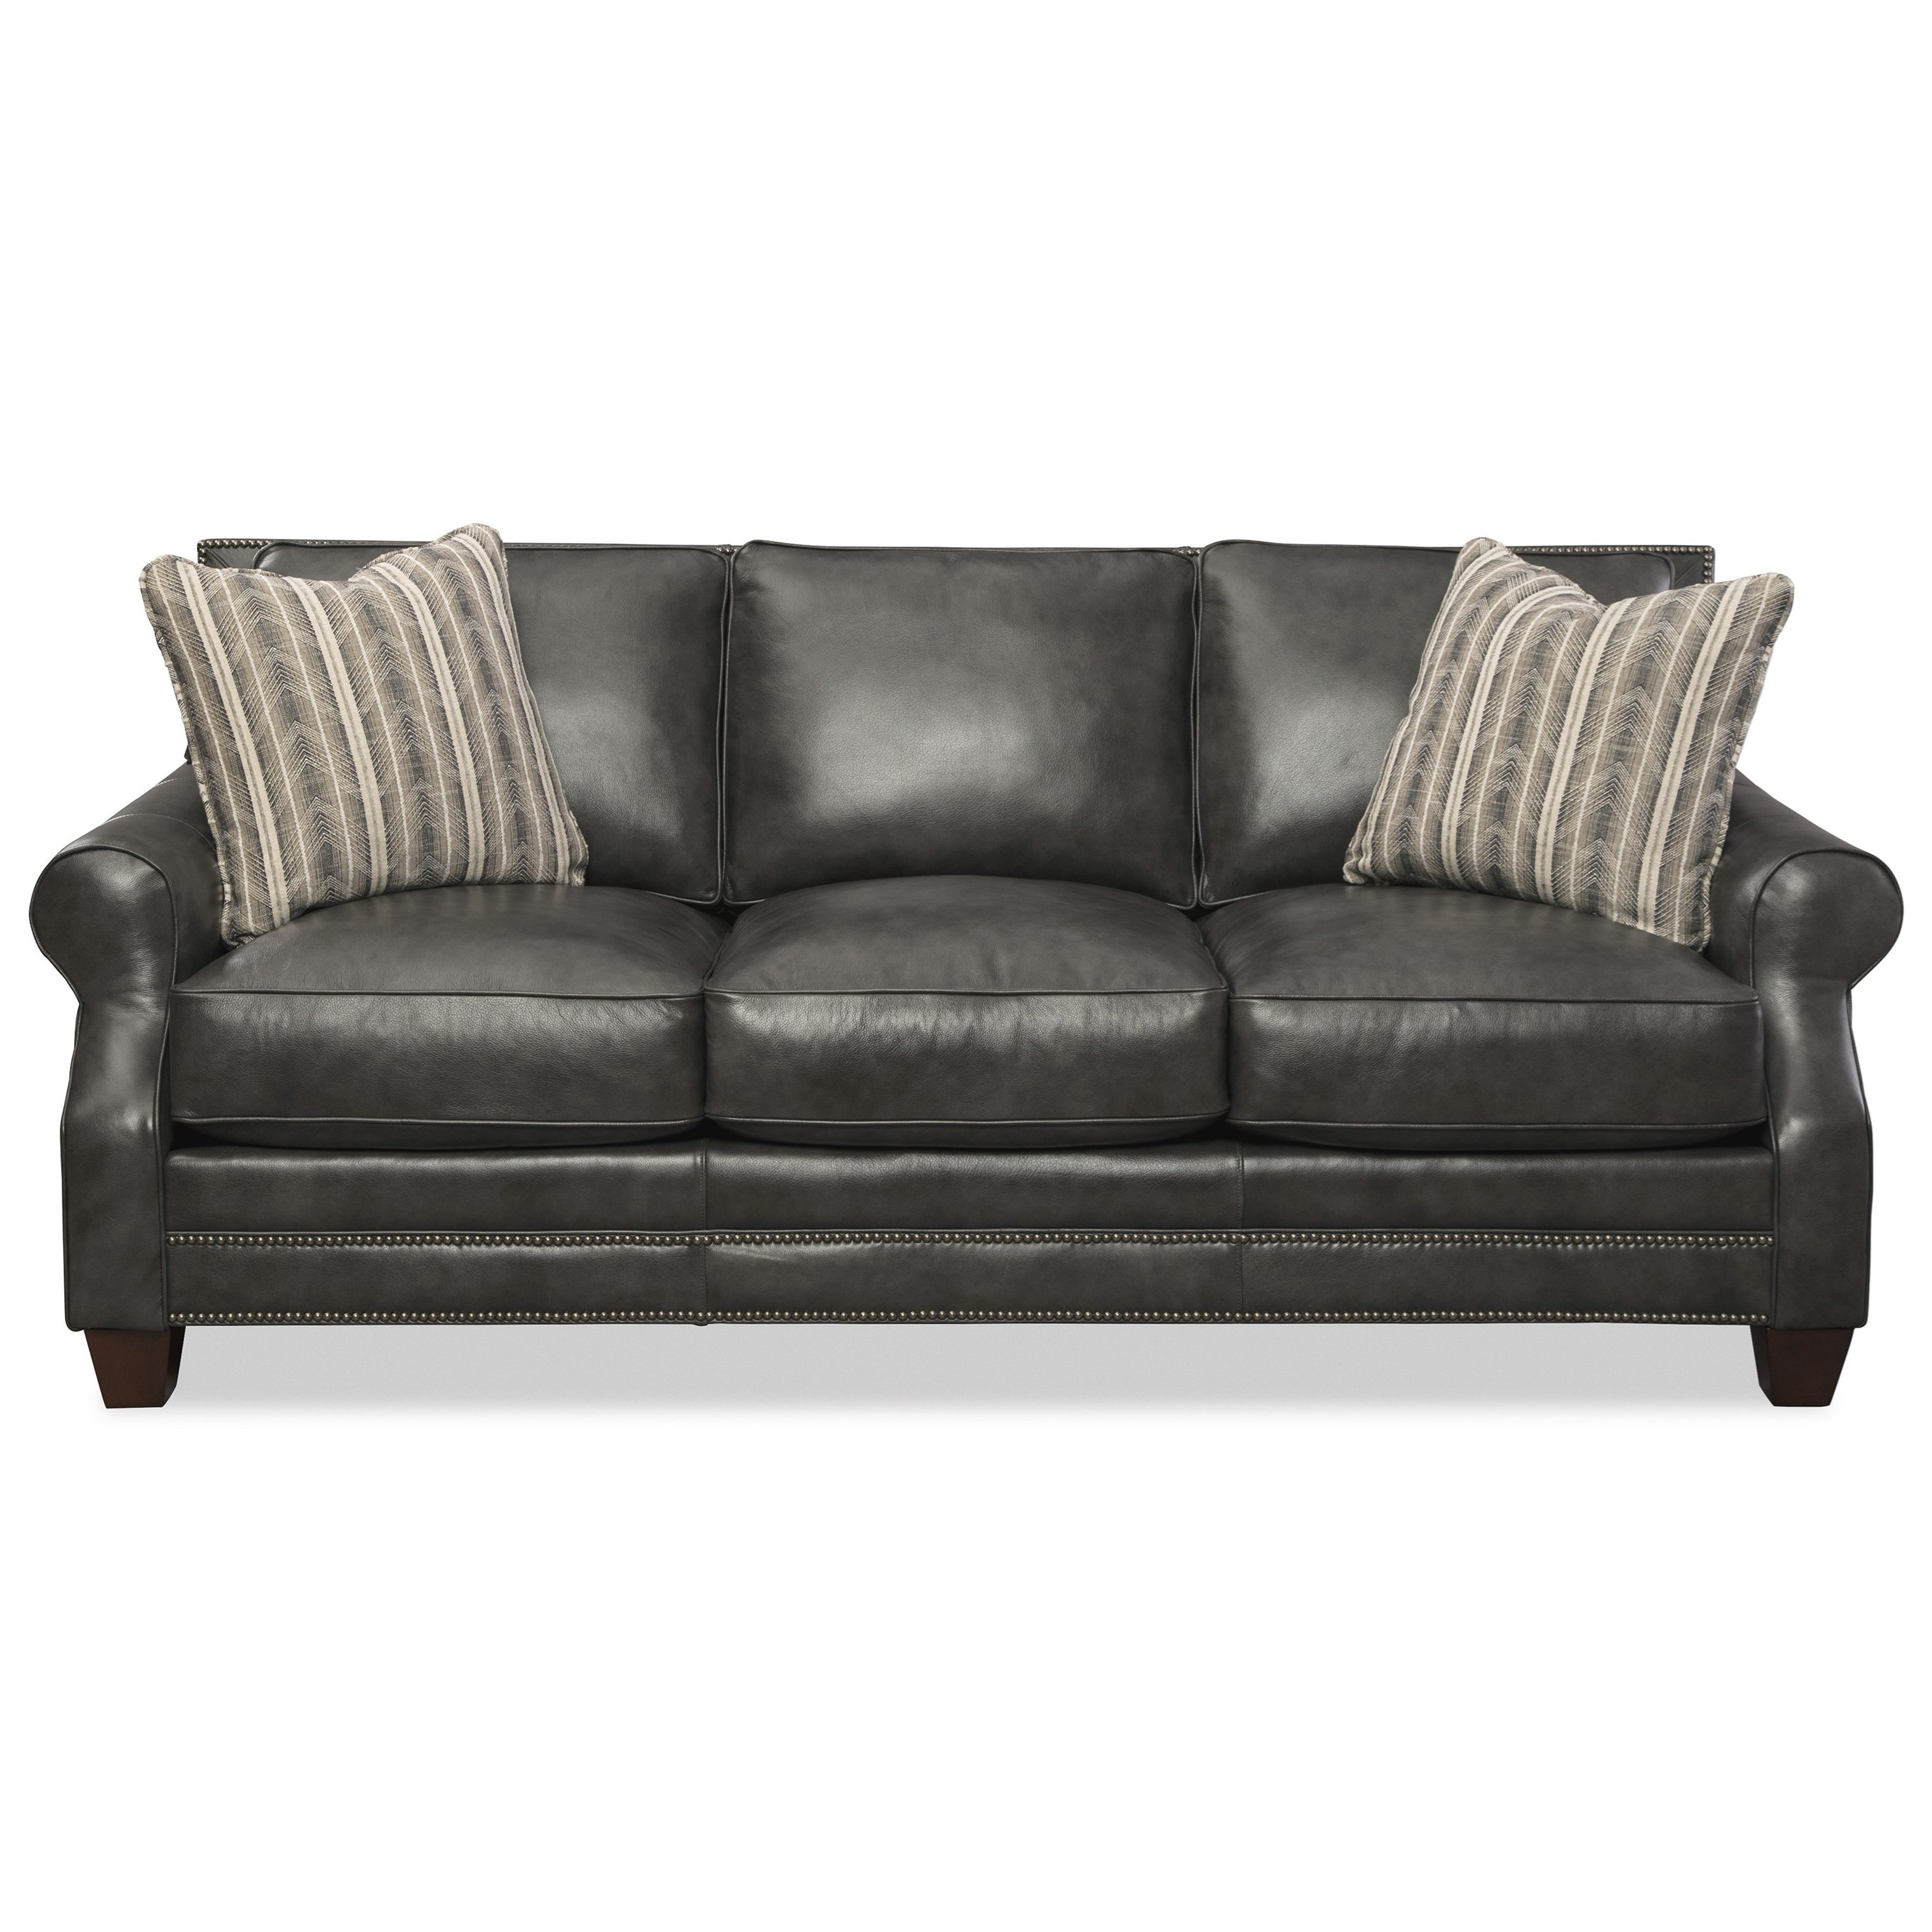 L793550BD Sofa with Accent Pillows by Craftmaster at Baer's Furniture